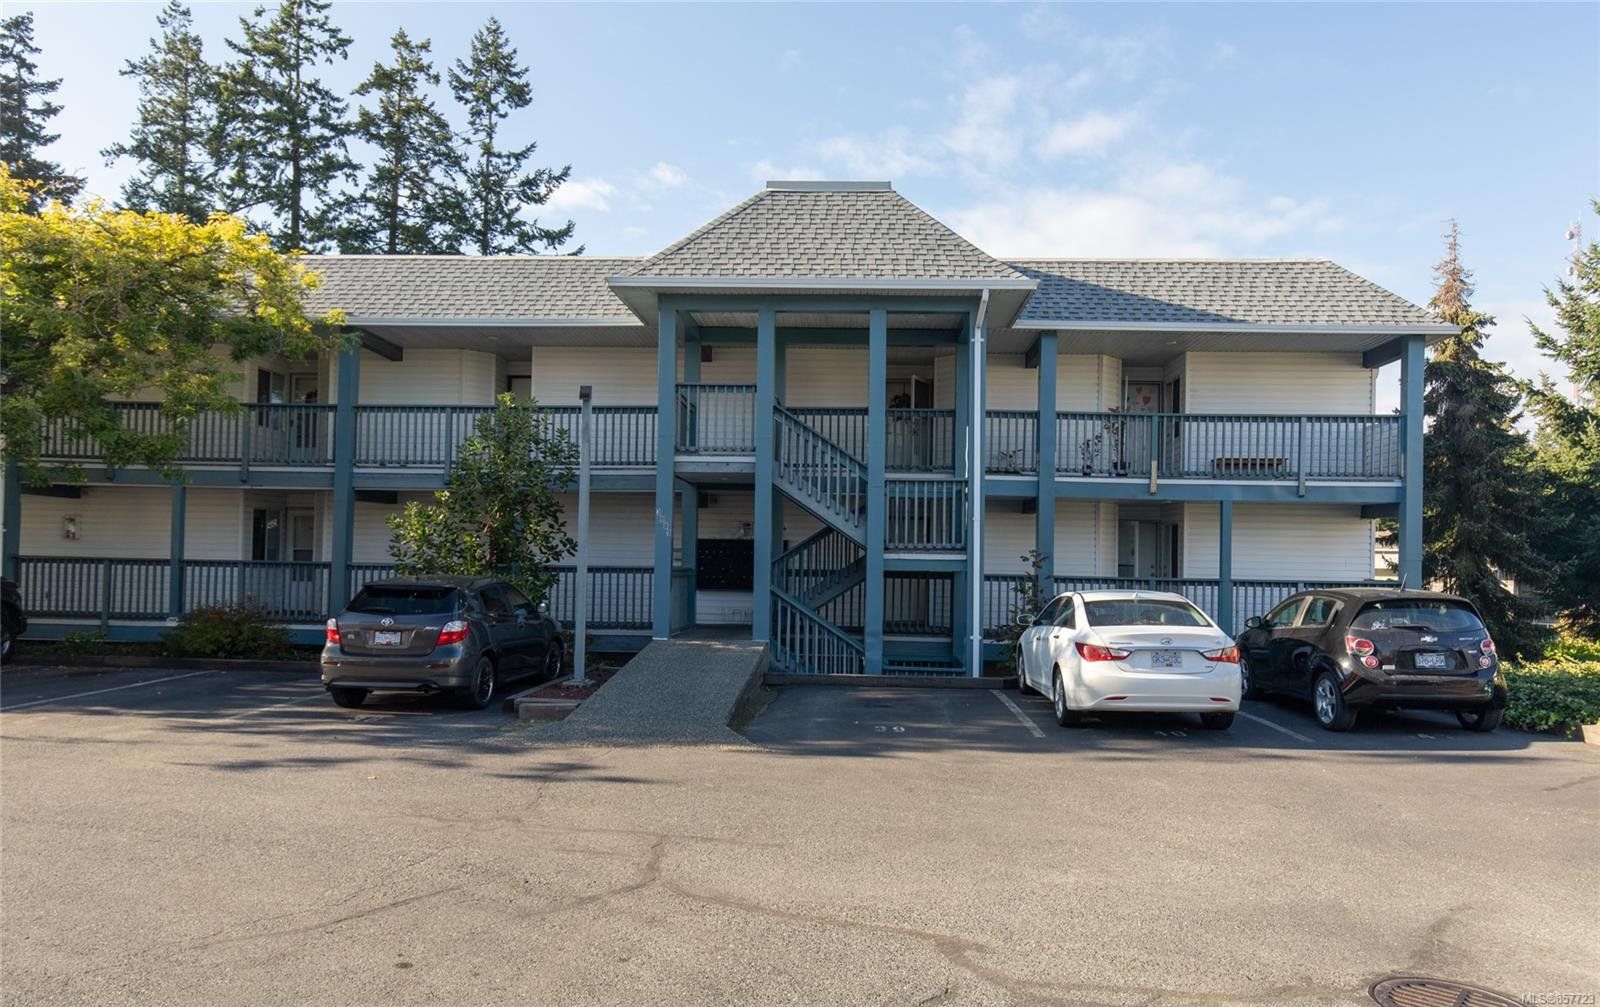 Main Photo: 106 3089 Barons Rd in : Na Uplands Condo for sale (Nanaimo)  : MLS®# 857723